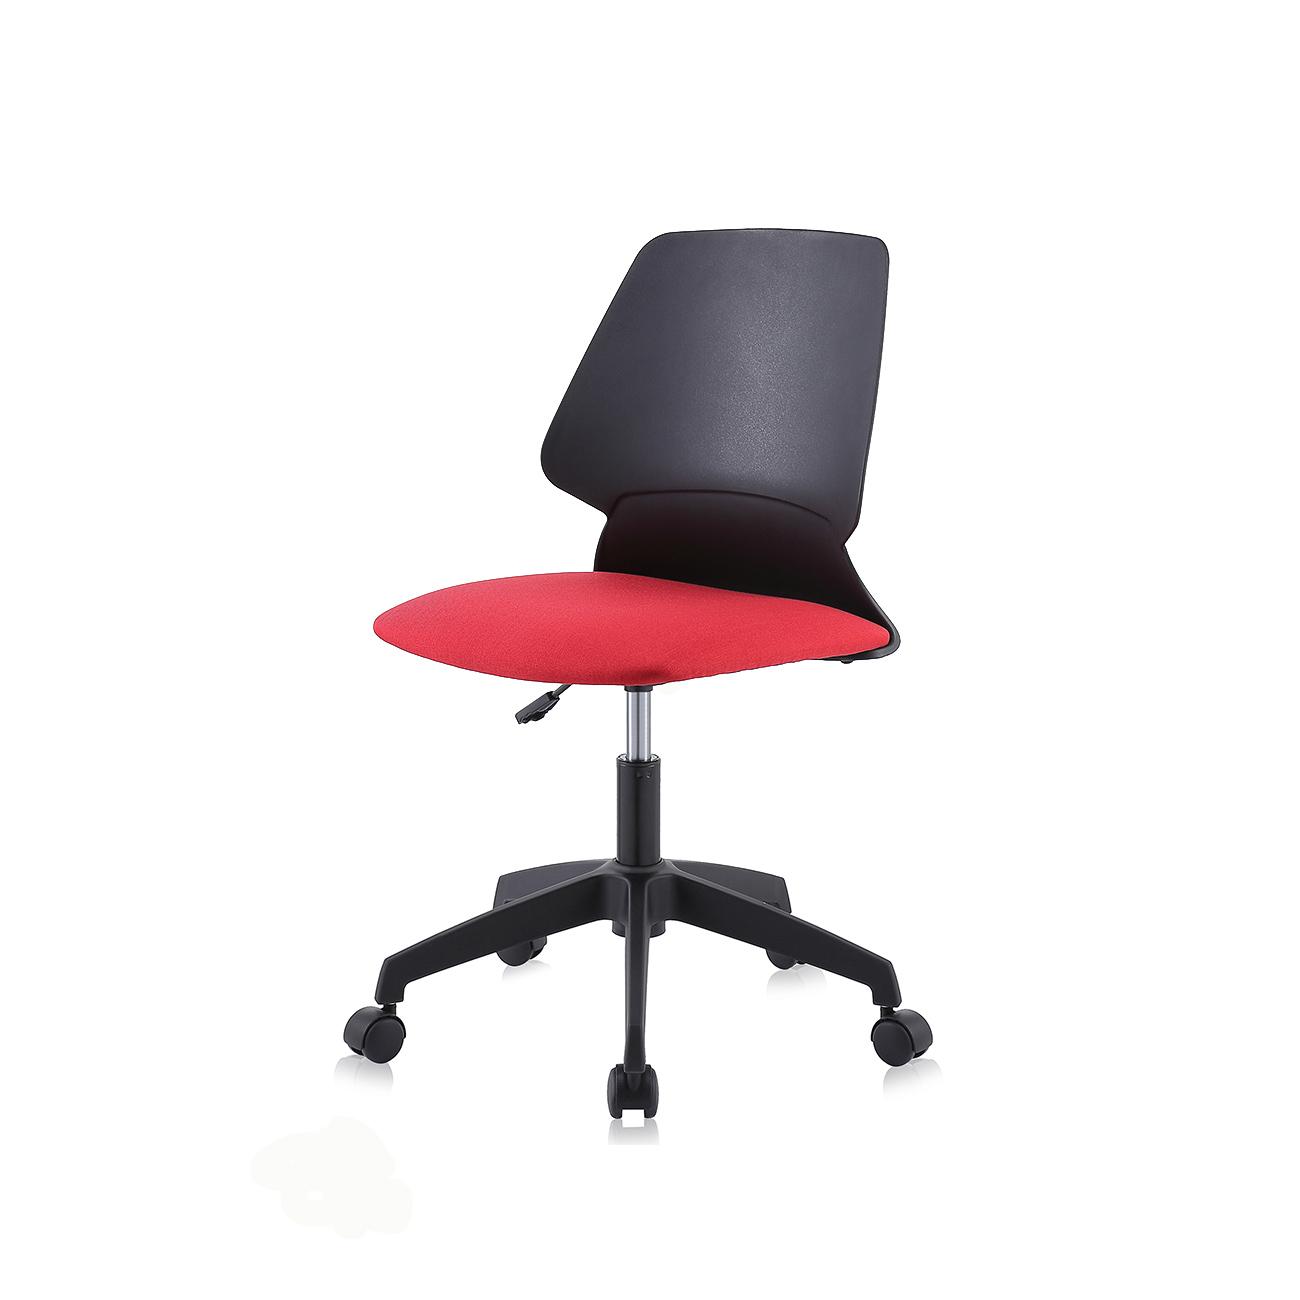 Bürostuhl design  MY SIT Office Chair / Design Stool Swivel Chair NEO with Soft ...